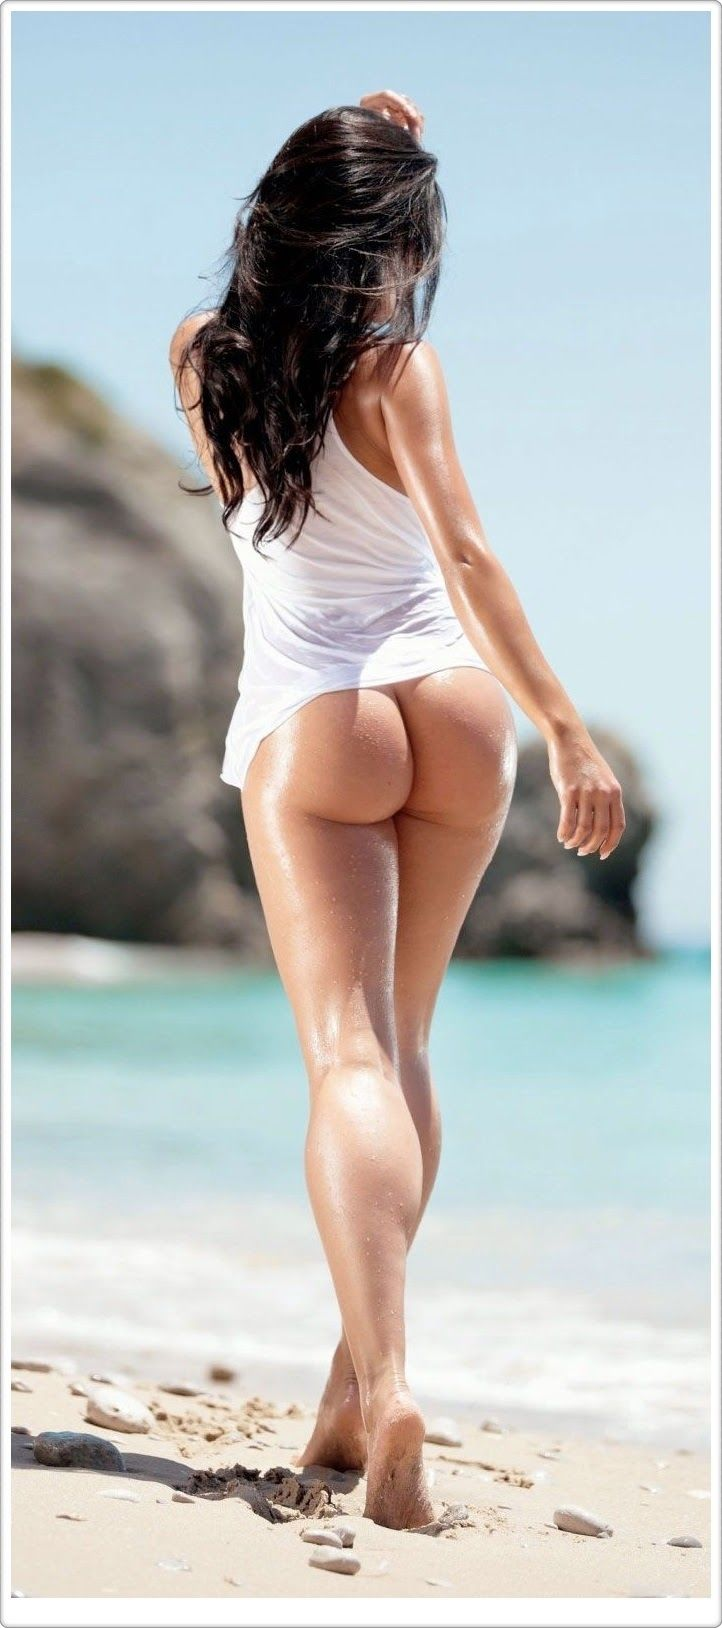 Best naked ass in the world